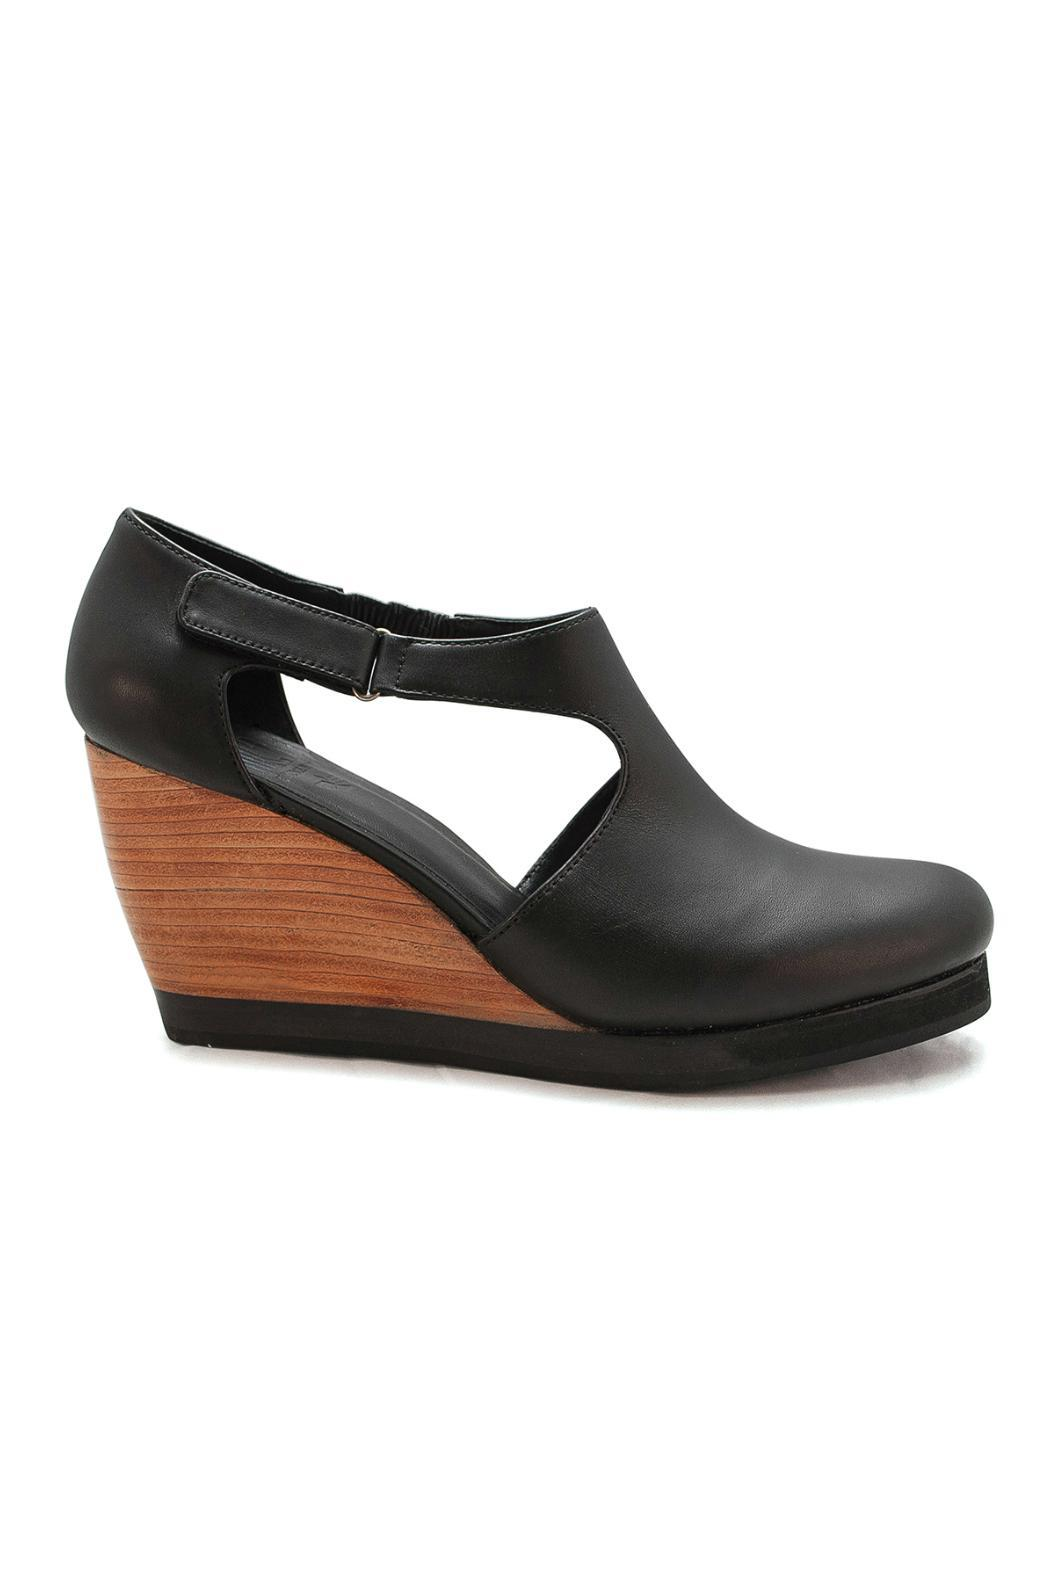 Fortress of Inca Black Leather Wedge - Front Full Image